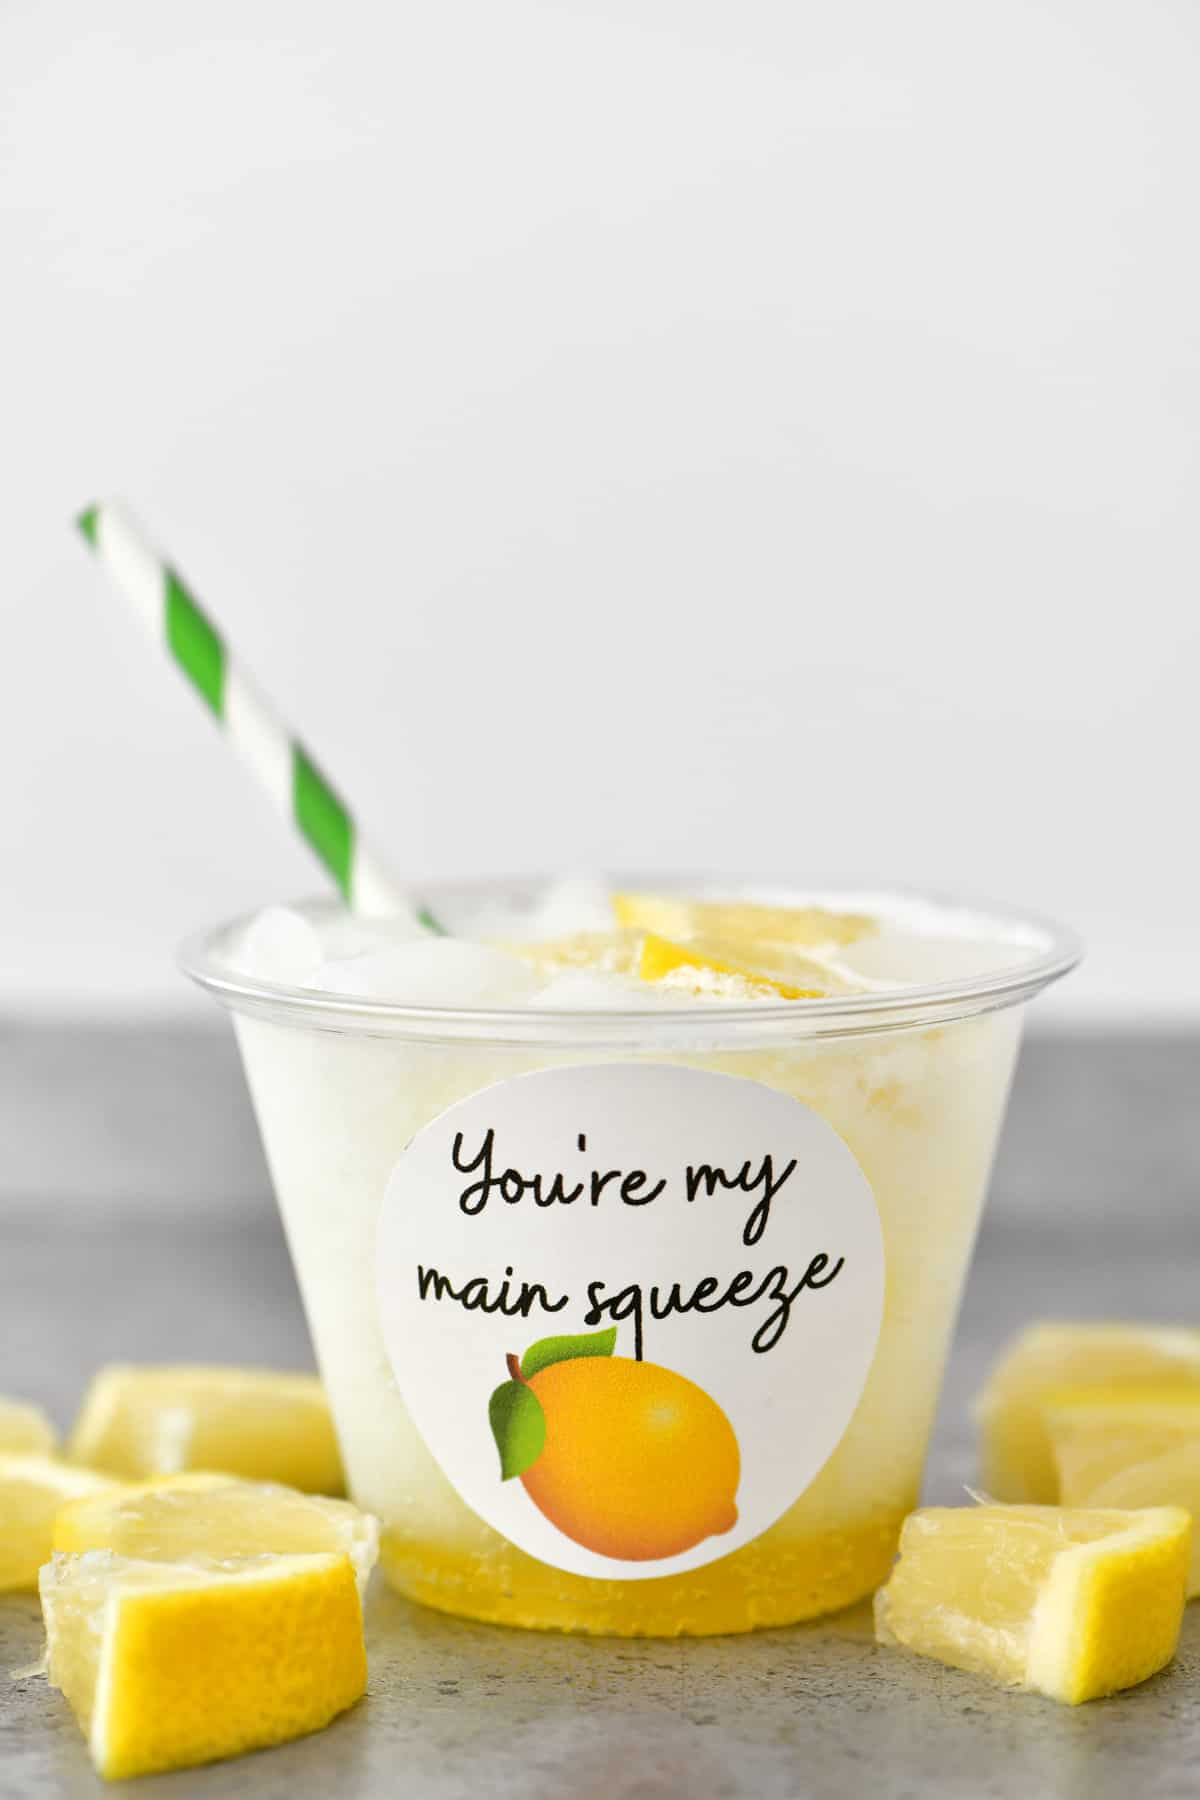 a lemon flavored valentines drink in a clear cup with a green and white striped straw